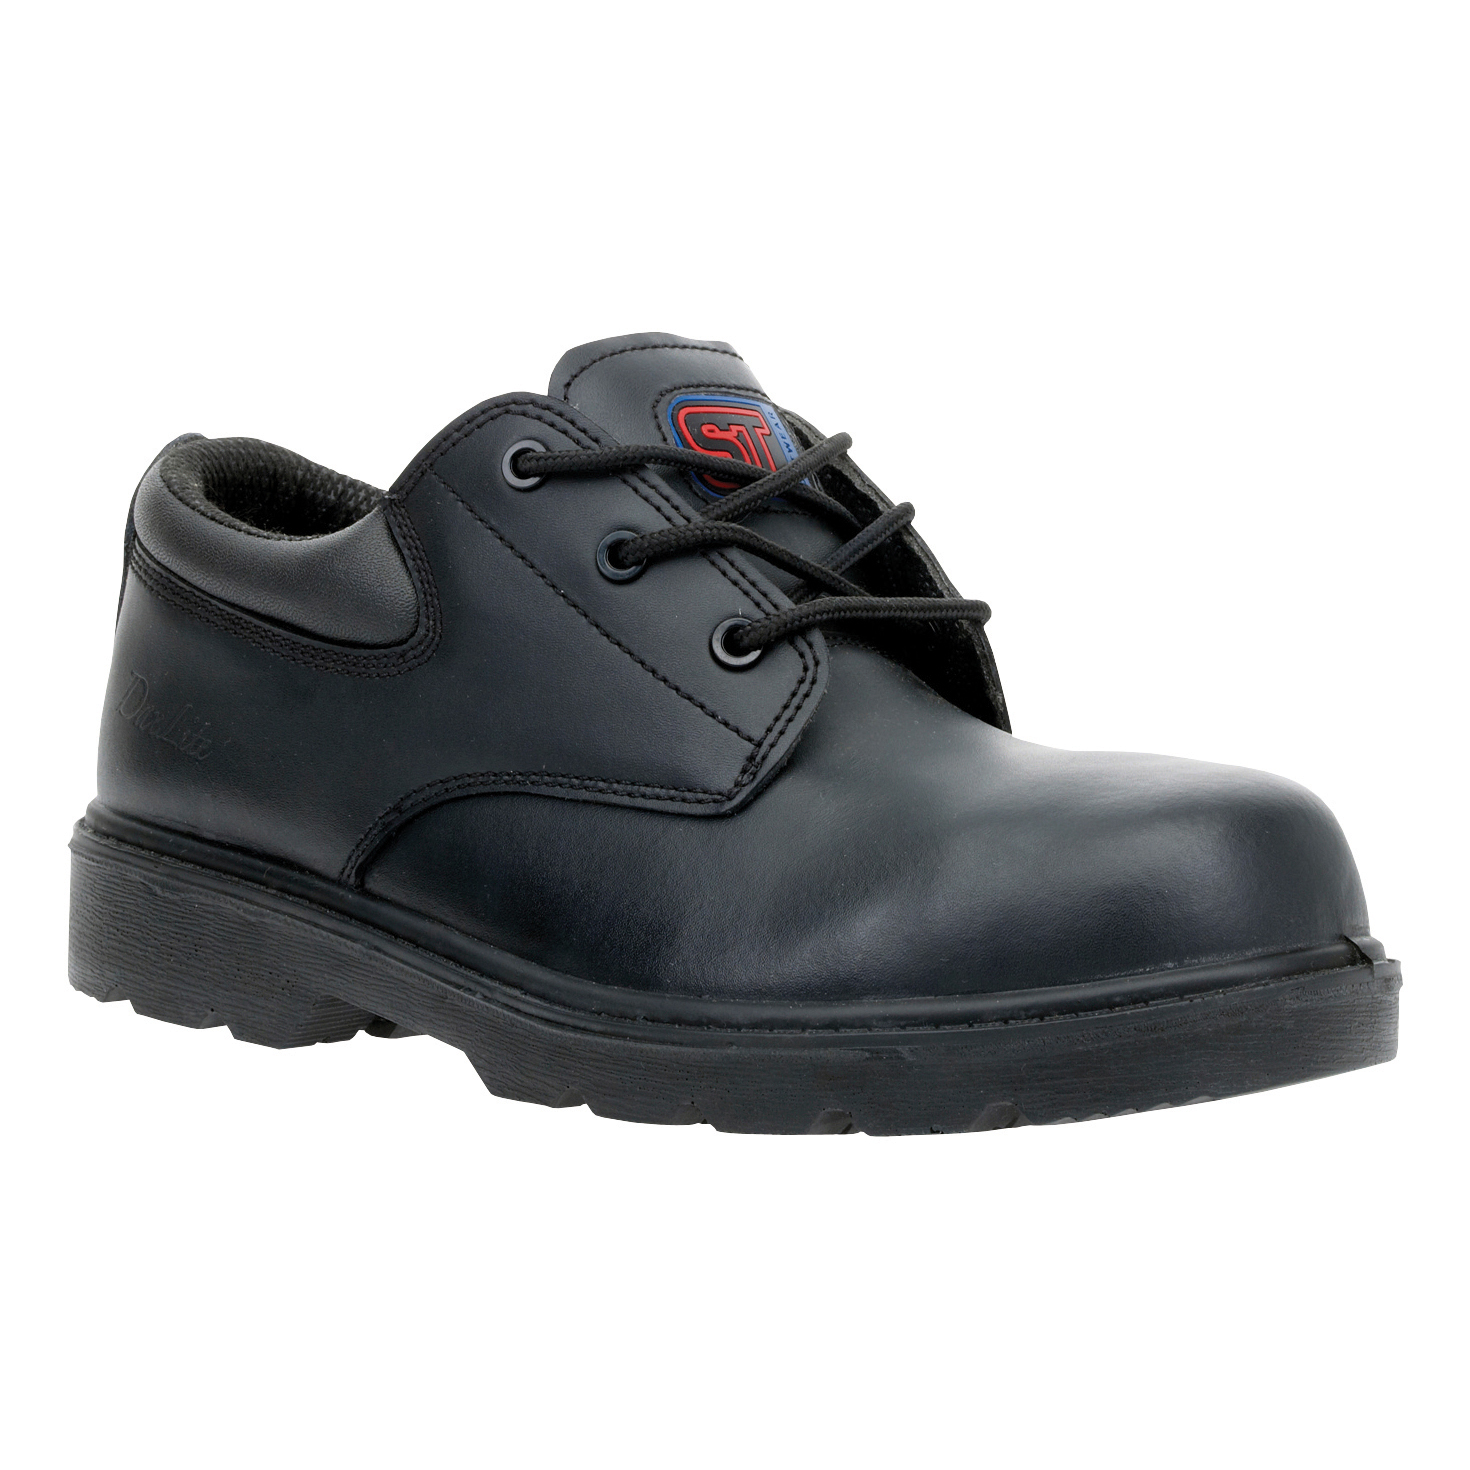 ST Dax Lite Air Comp' Shoe Metal Free Safety Toecap & Midsole Size 13 Blk Ref 90868 *Approx 3 Day L/Time*